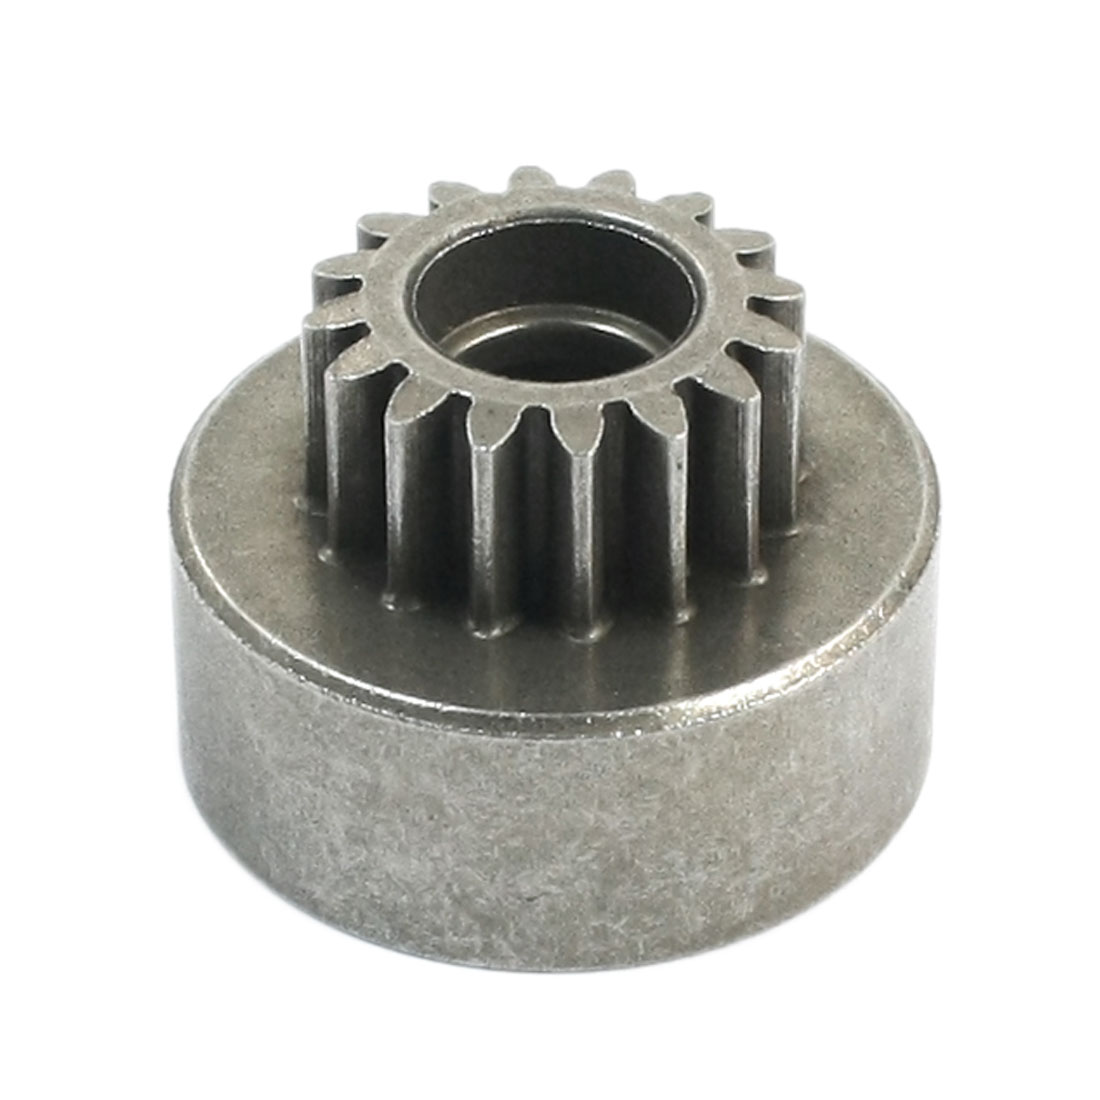 02107 Steel Clutch Bell 16T 20mm x 29mm for 94188 RC 1/10 Car